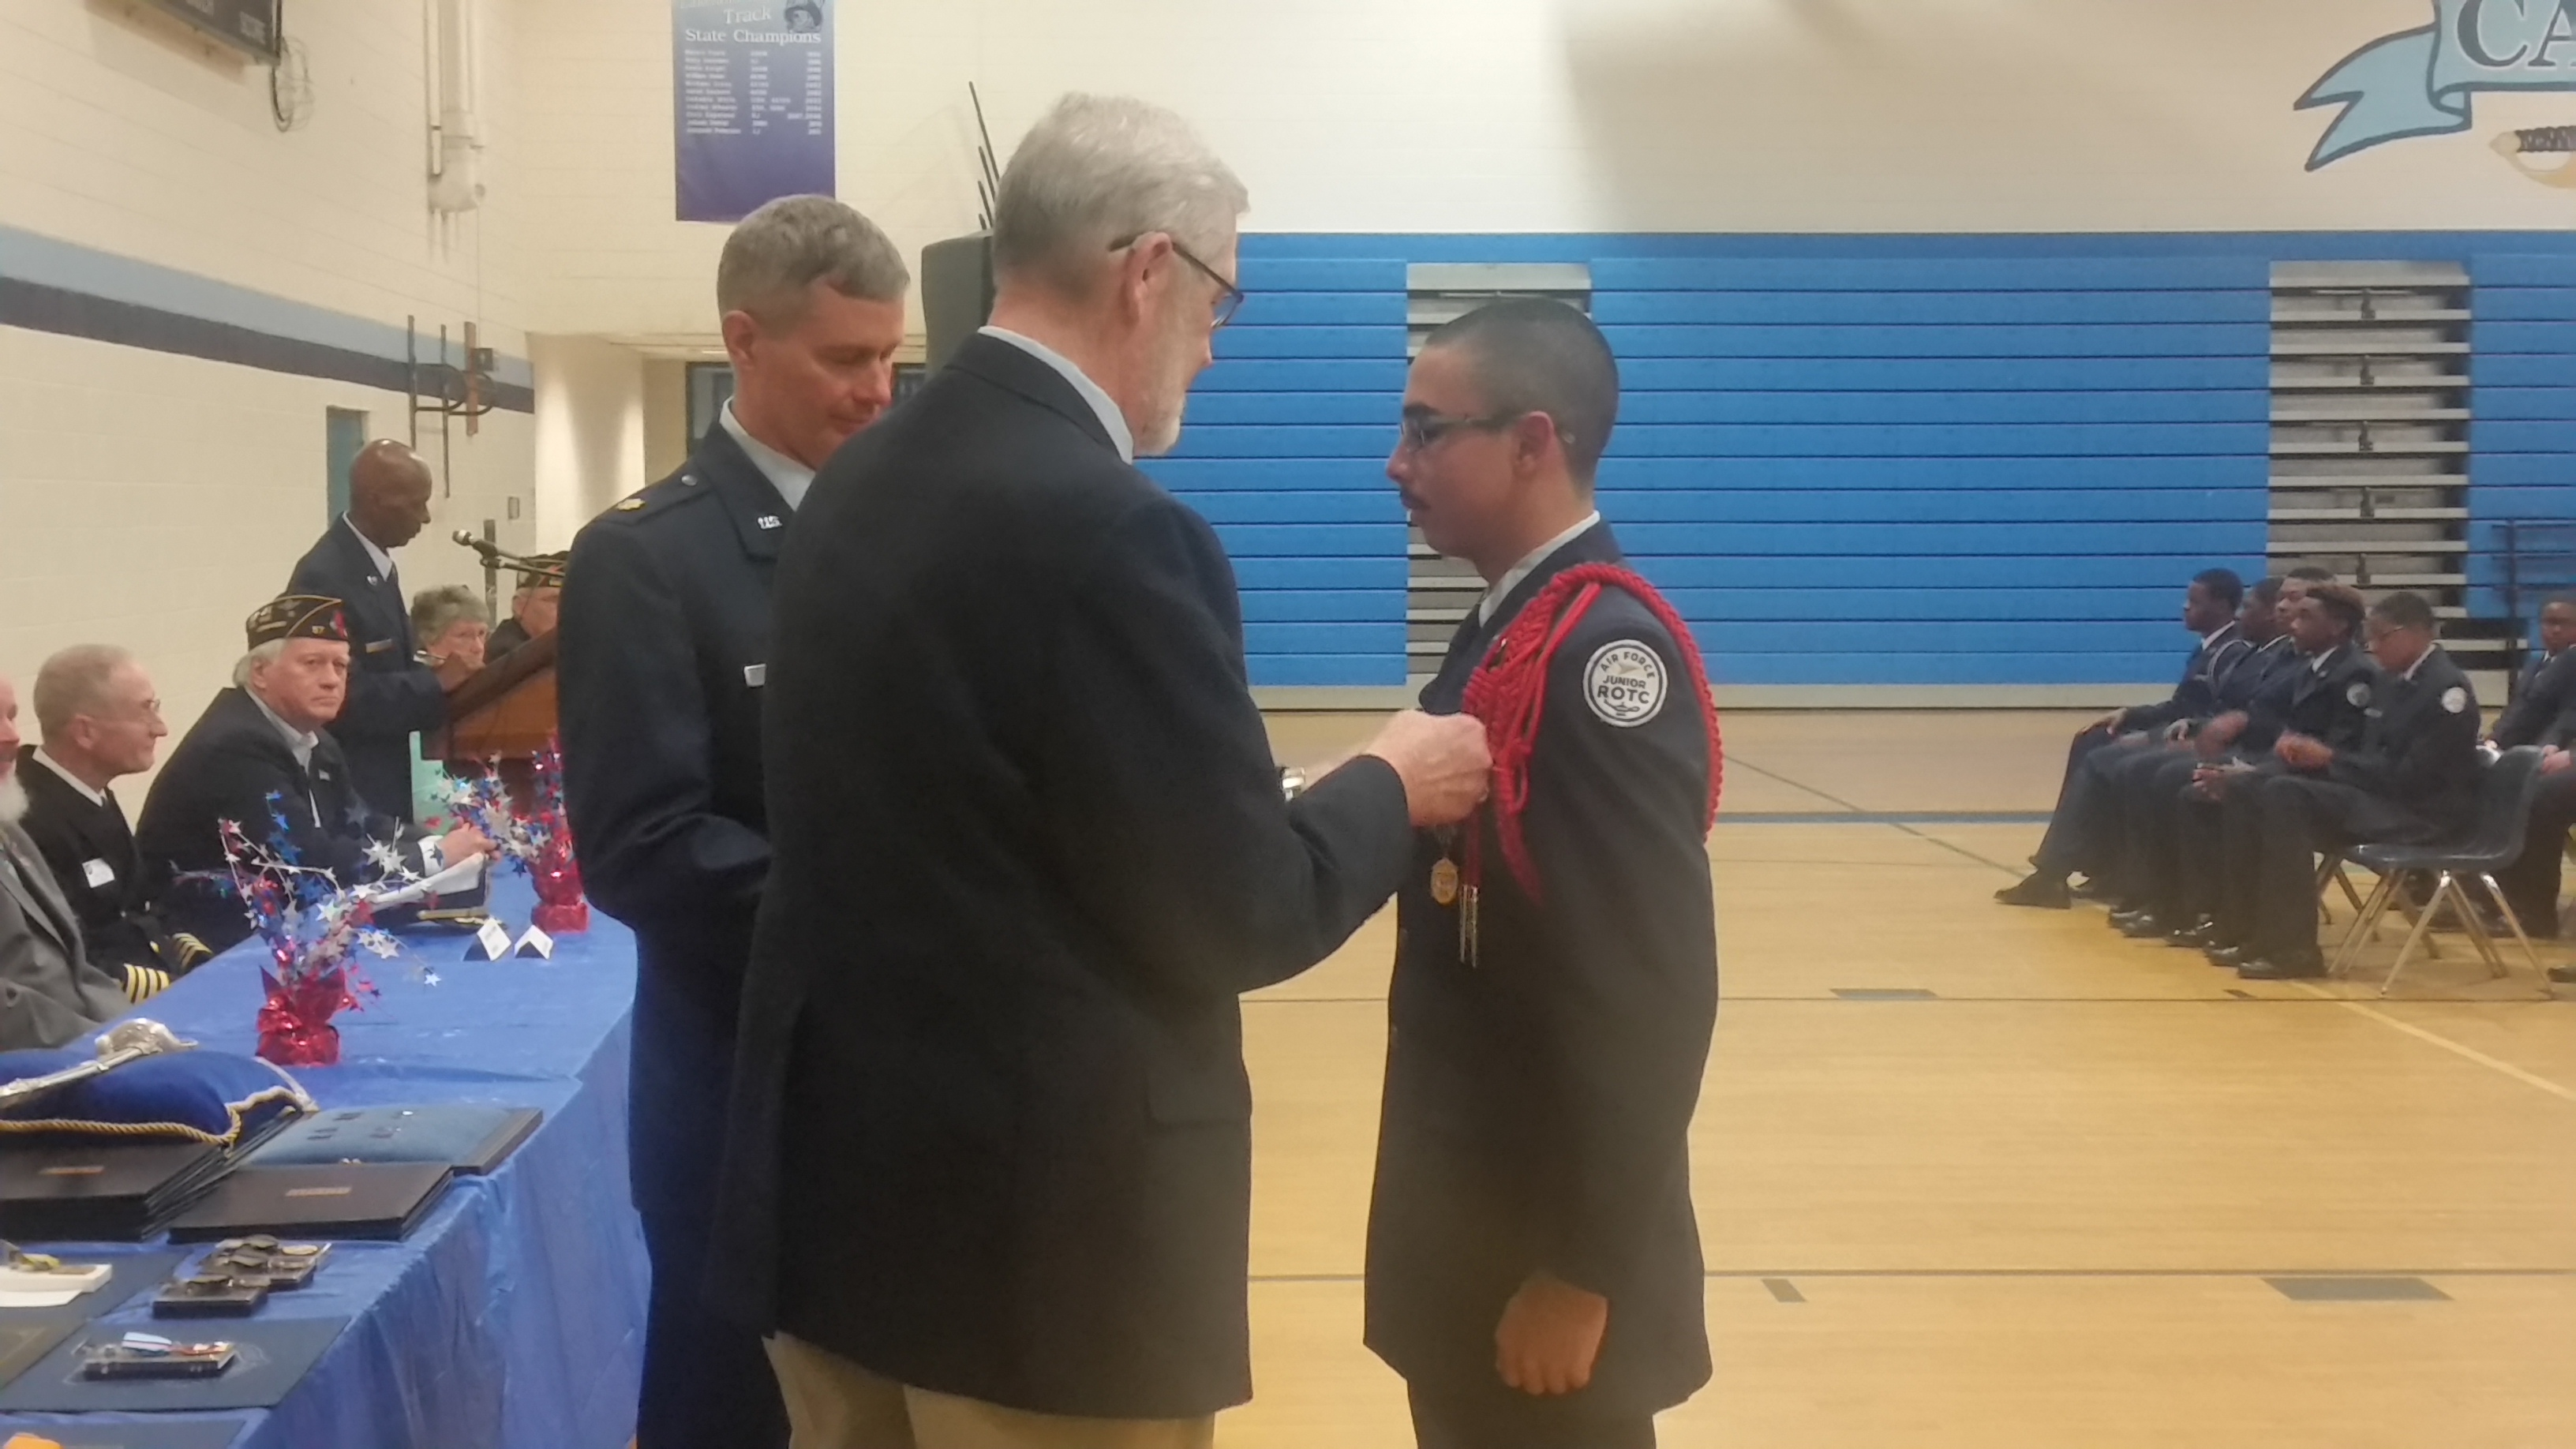 President Maury Weeks presents Nelson Rosa with the SAR Bronze ROTC Medal.